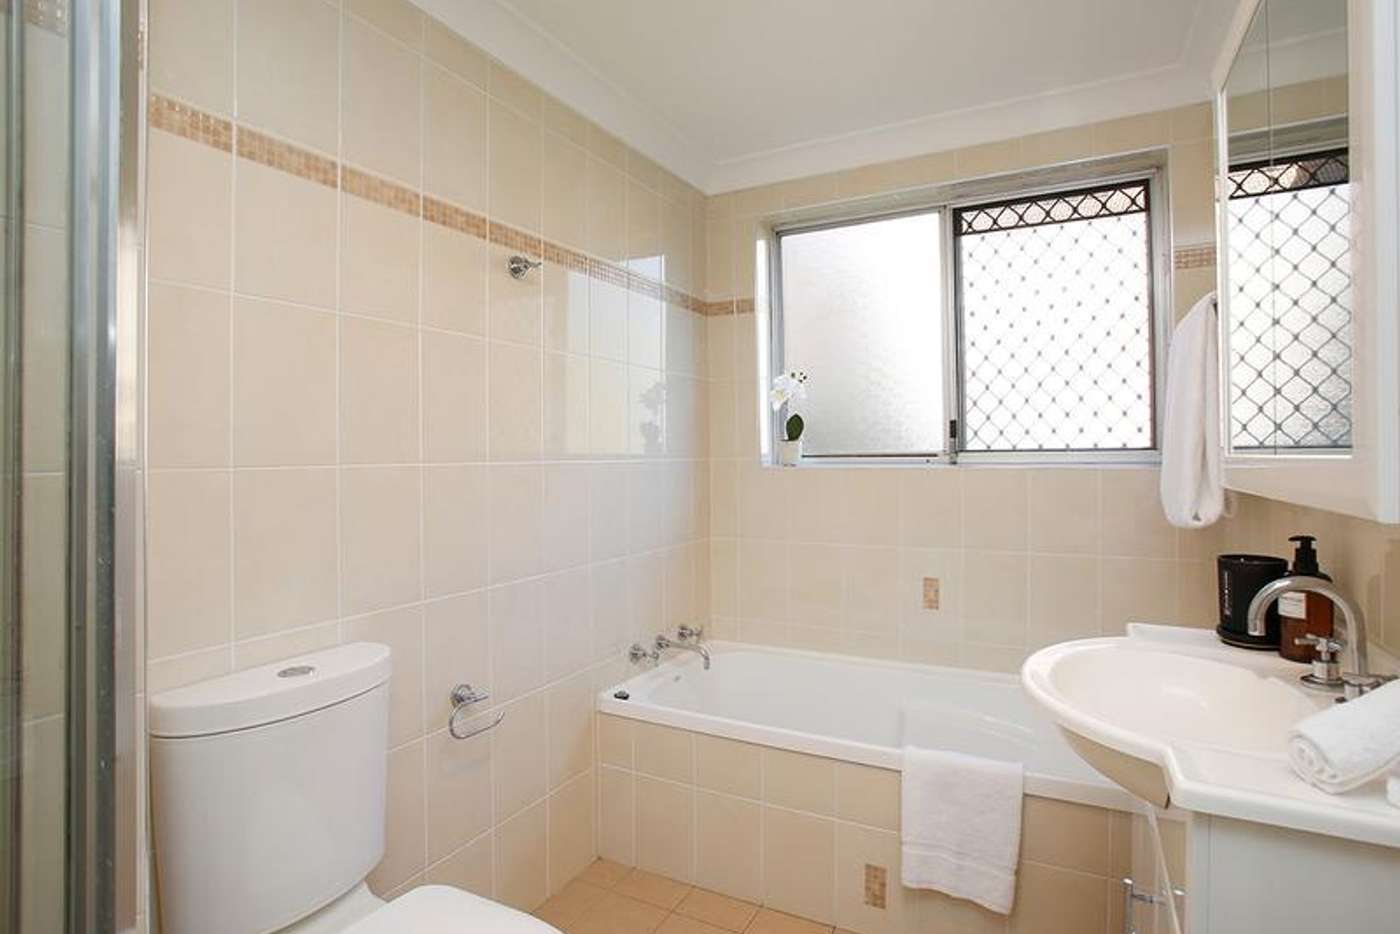 Seventh view of Homely apartment listing, 2/15 Cecil Street, Ashfield NSW 2131